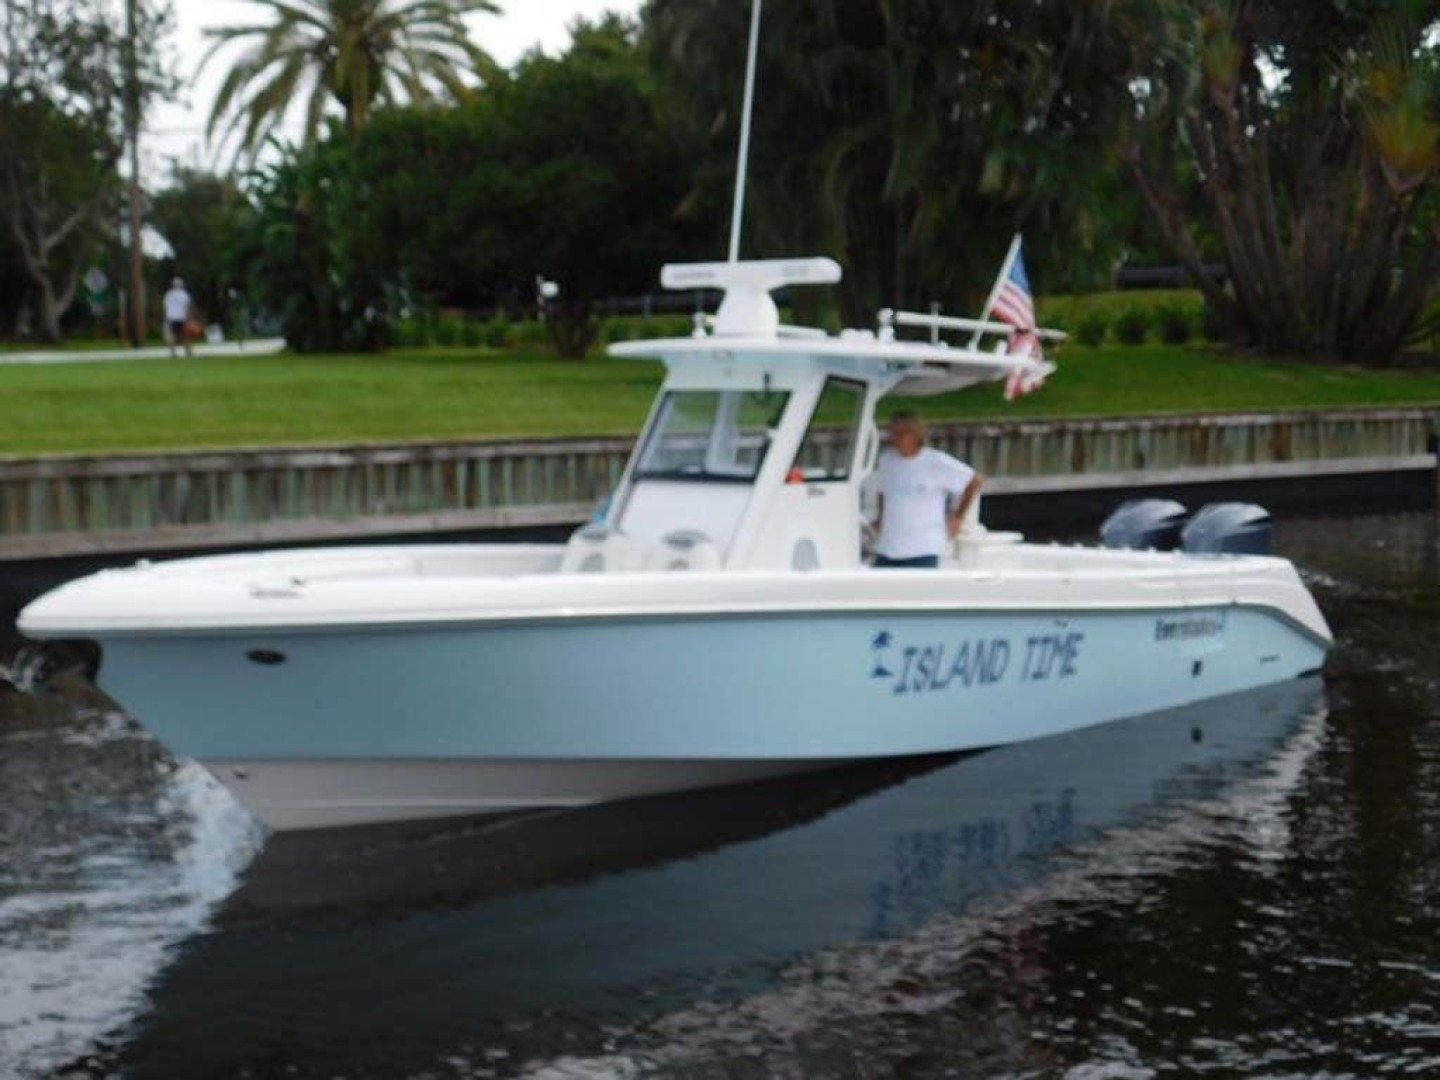 Everglades-325 CC 2012-Island Time Stuart-Florida-United States-Port Side-1414826 | Thumbnail